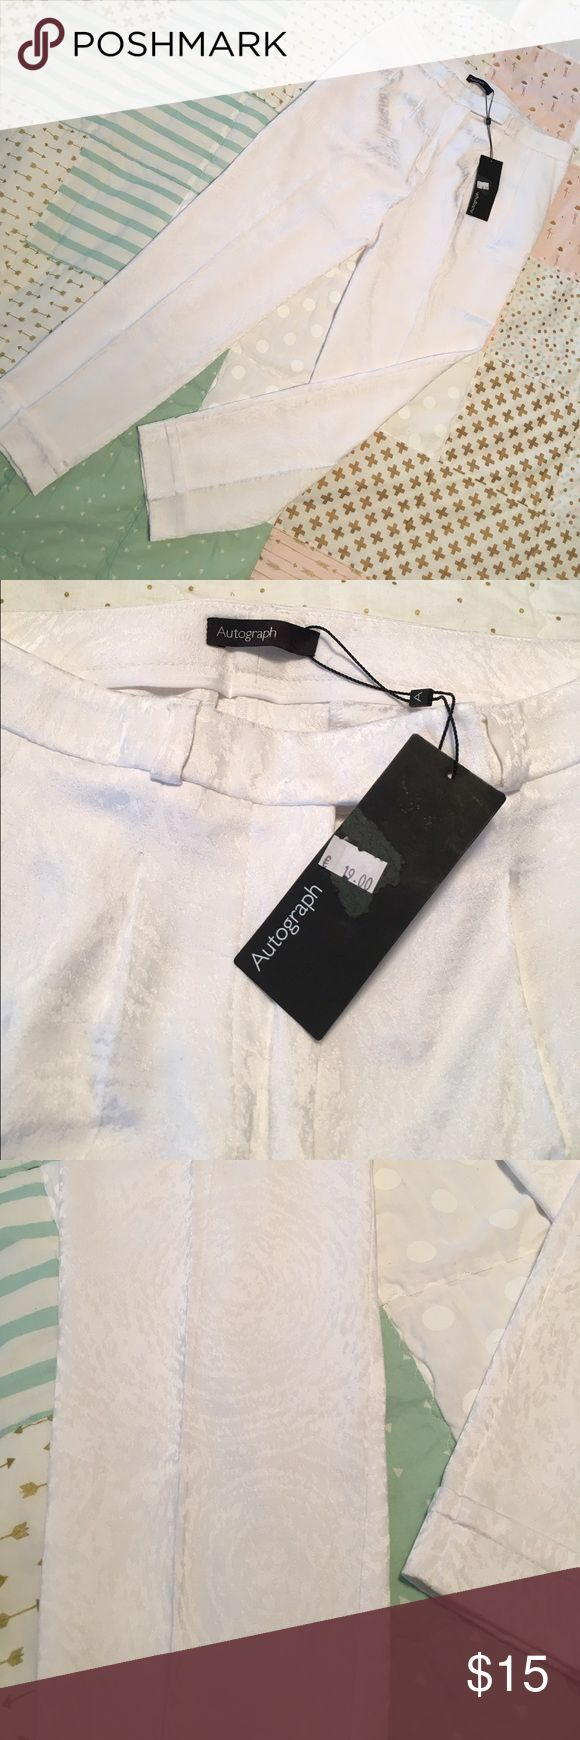 "Autograph by Marks & Spencer White Cropped Trouser Purchased in Greece at Marks and Spencer and never worn. 🇬🇷 Size 10 UK is 8 in USA. NWT 49% Viscose 48% Polyester 3% Elastane.  Length is 24 1/4"" and Waist is 14 1/2"" Autograph by Marks and Spencer Pants Ankle & Cropped"